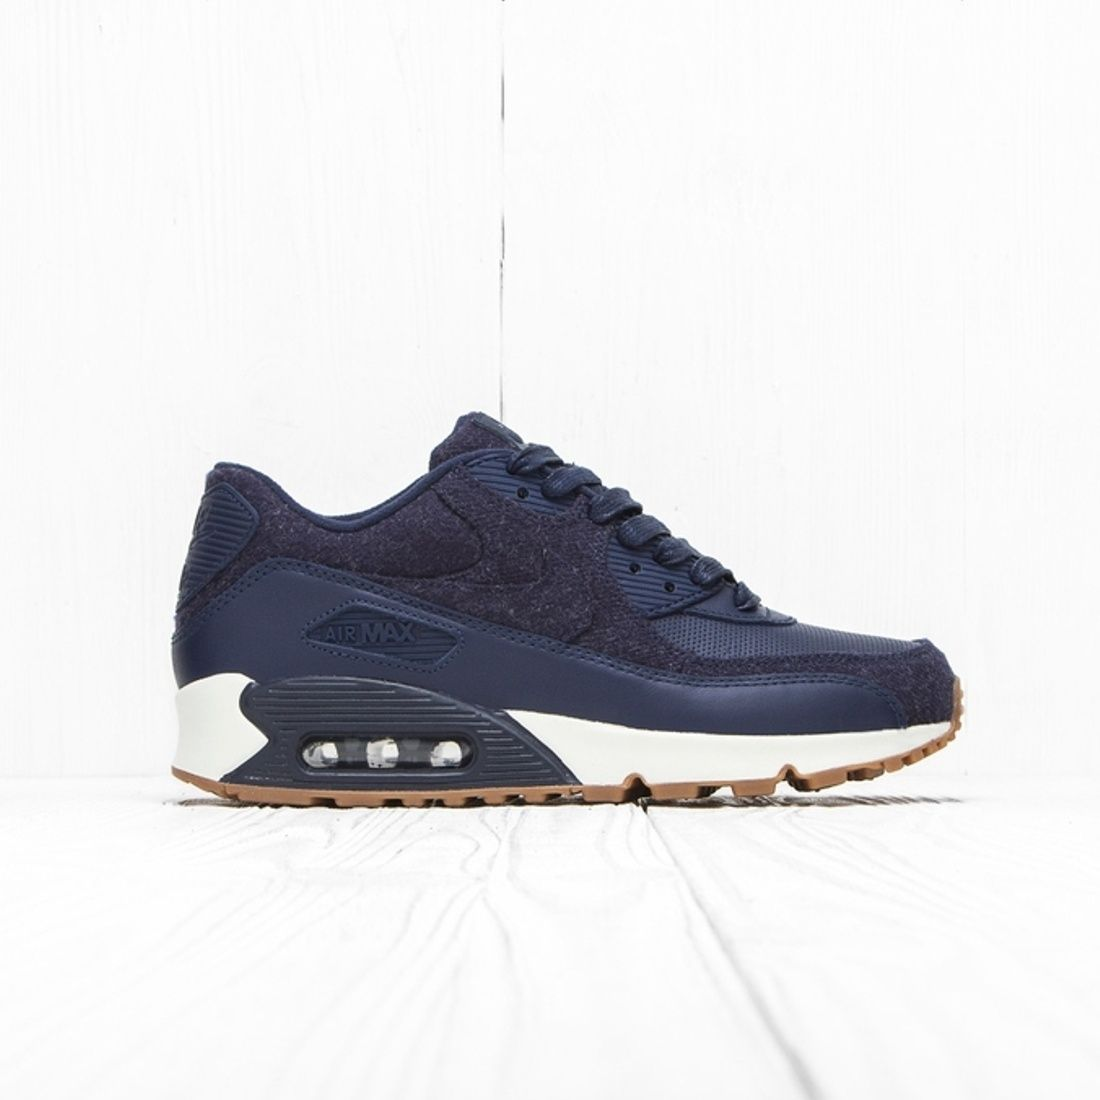 c0ee299c85d Nike Nike Air Max 90 Prm Midnight Navy Midnight Navy 700155 401 10.5 Us Size  10.5  230 - Grailed